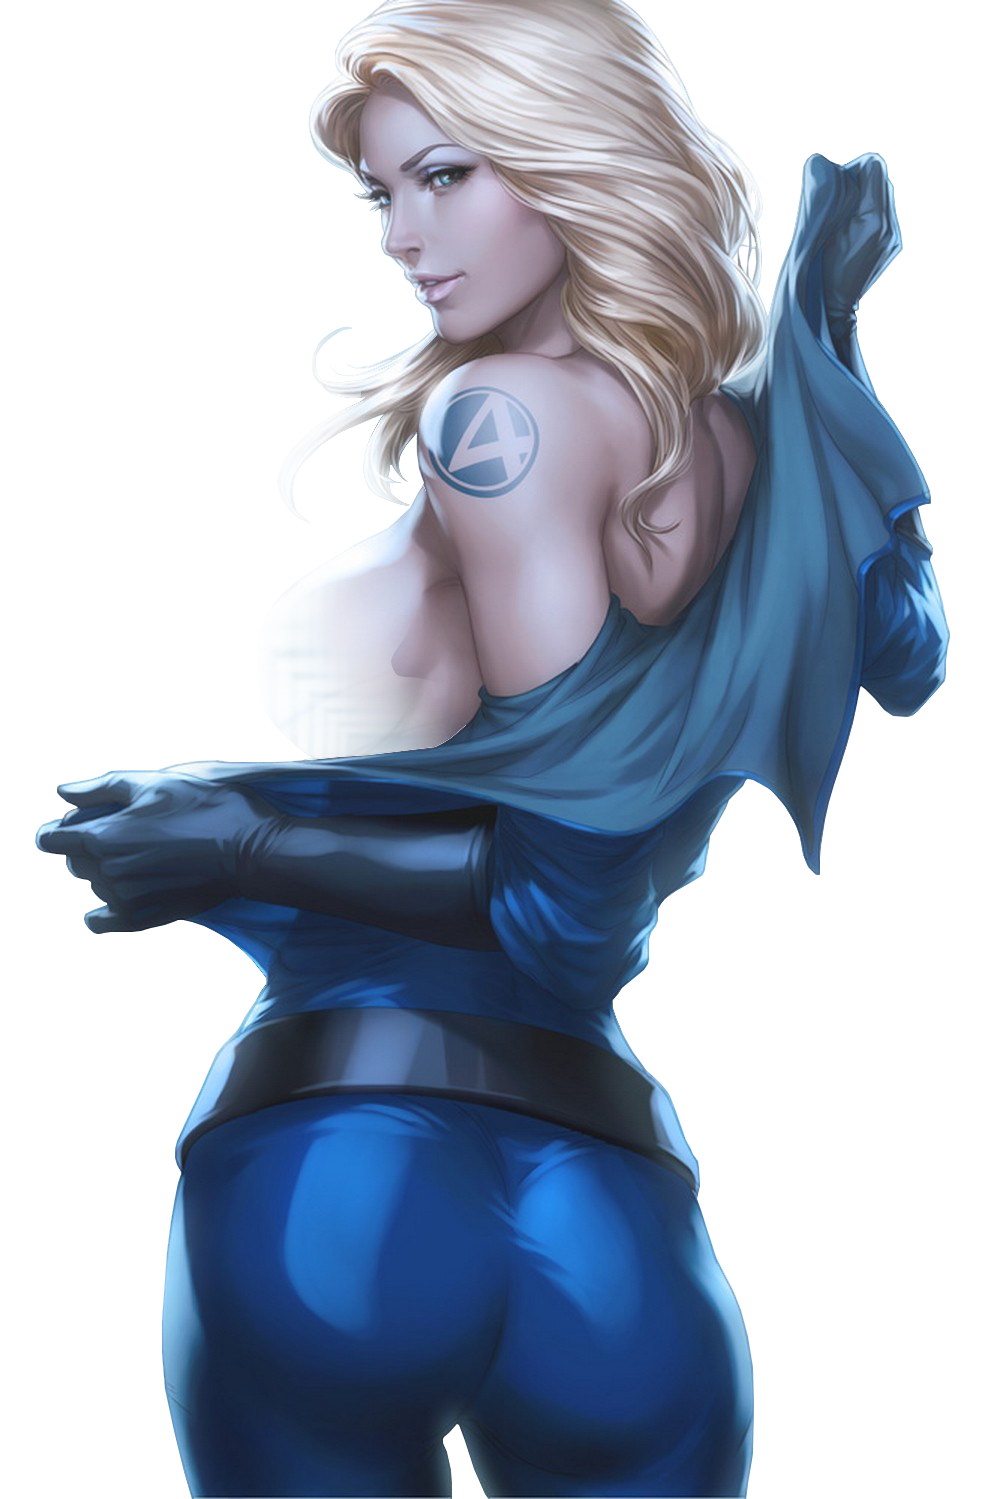 invisible_woman_render_by_american_paladin-d63lnp5.png